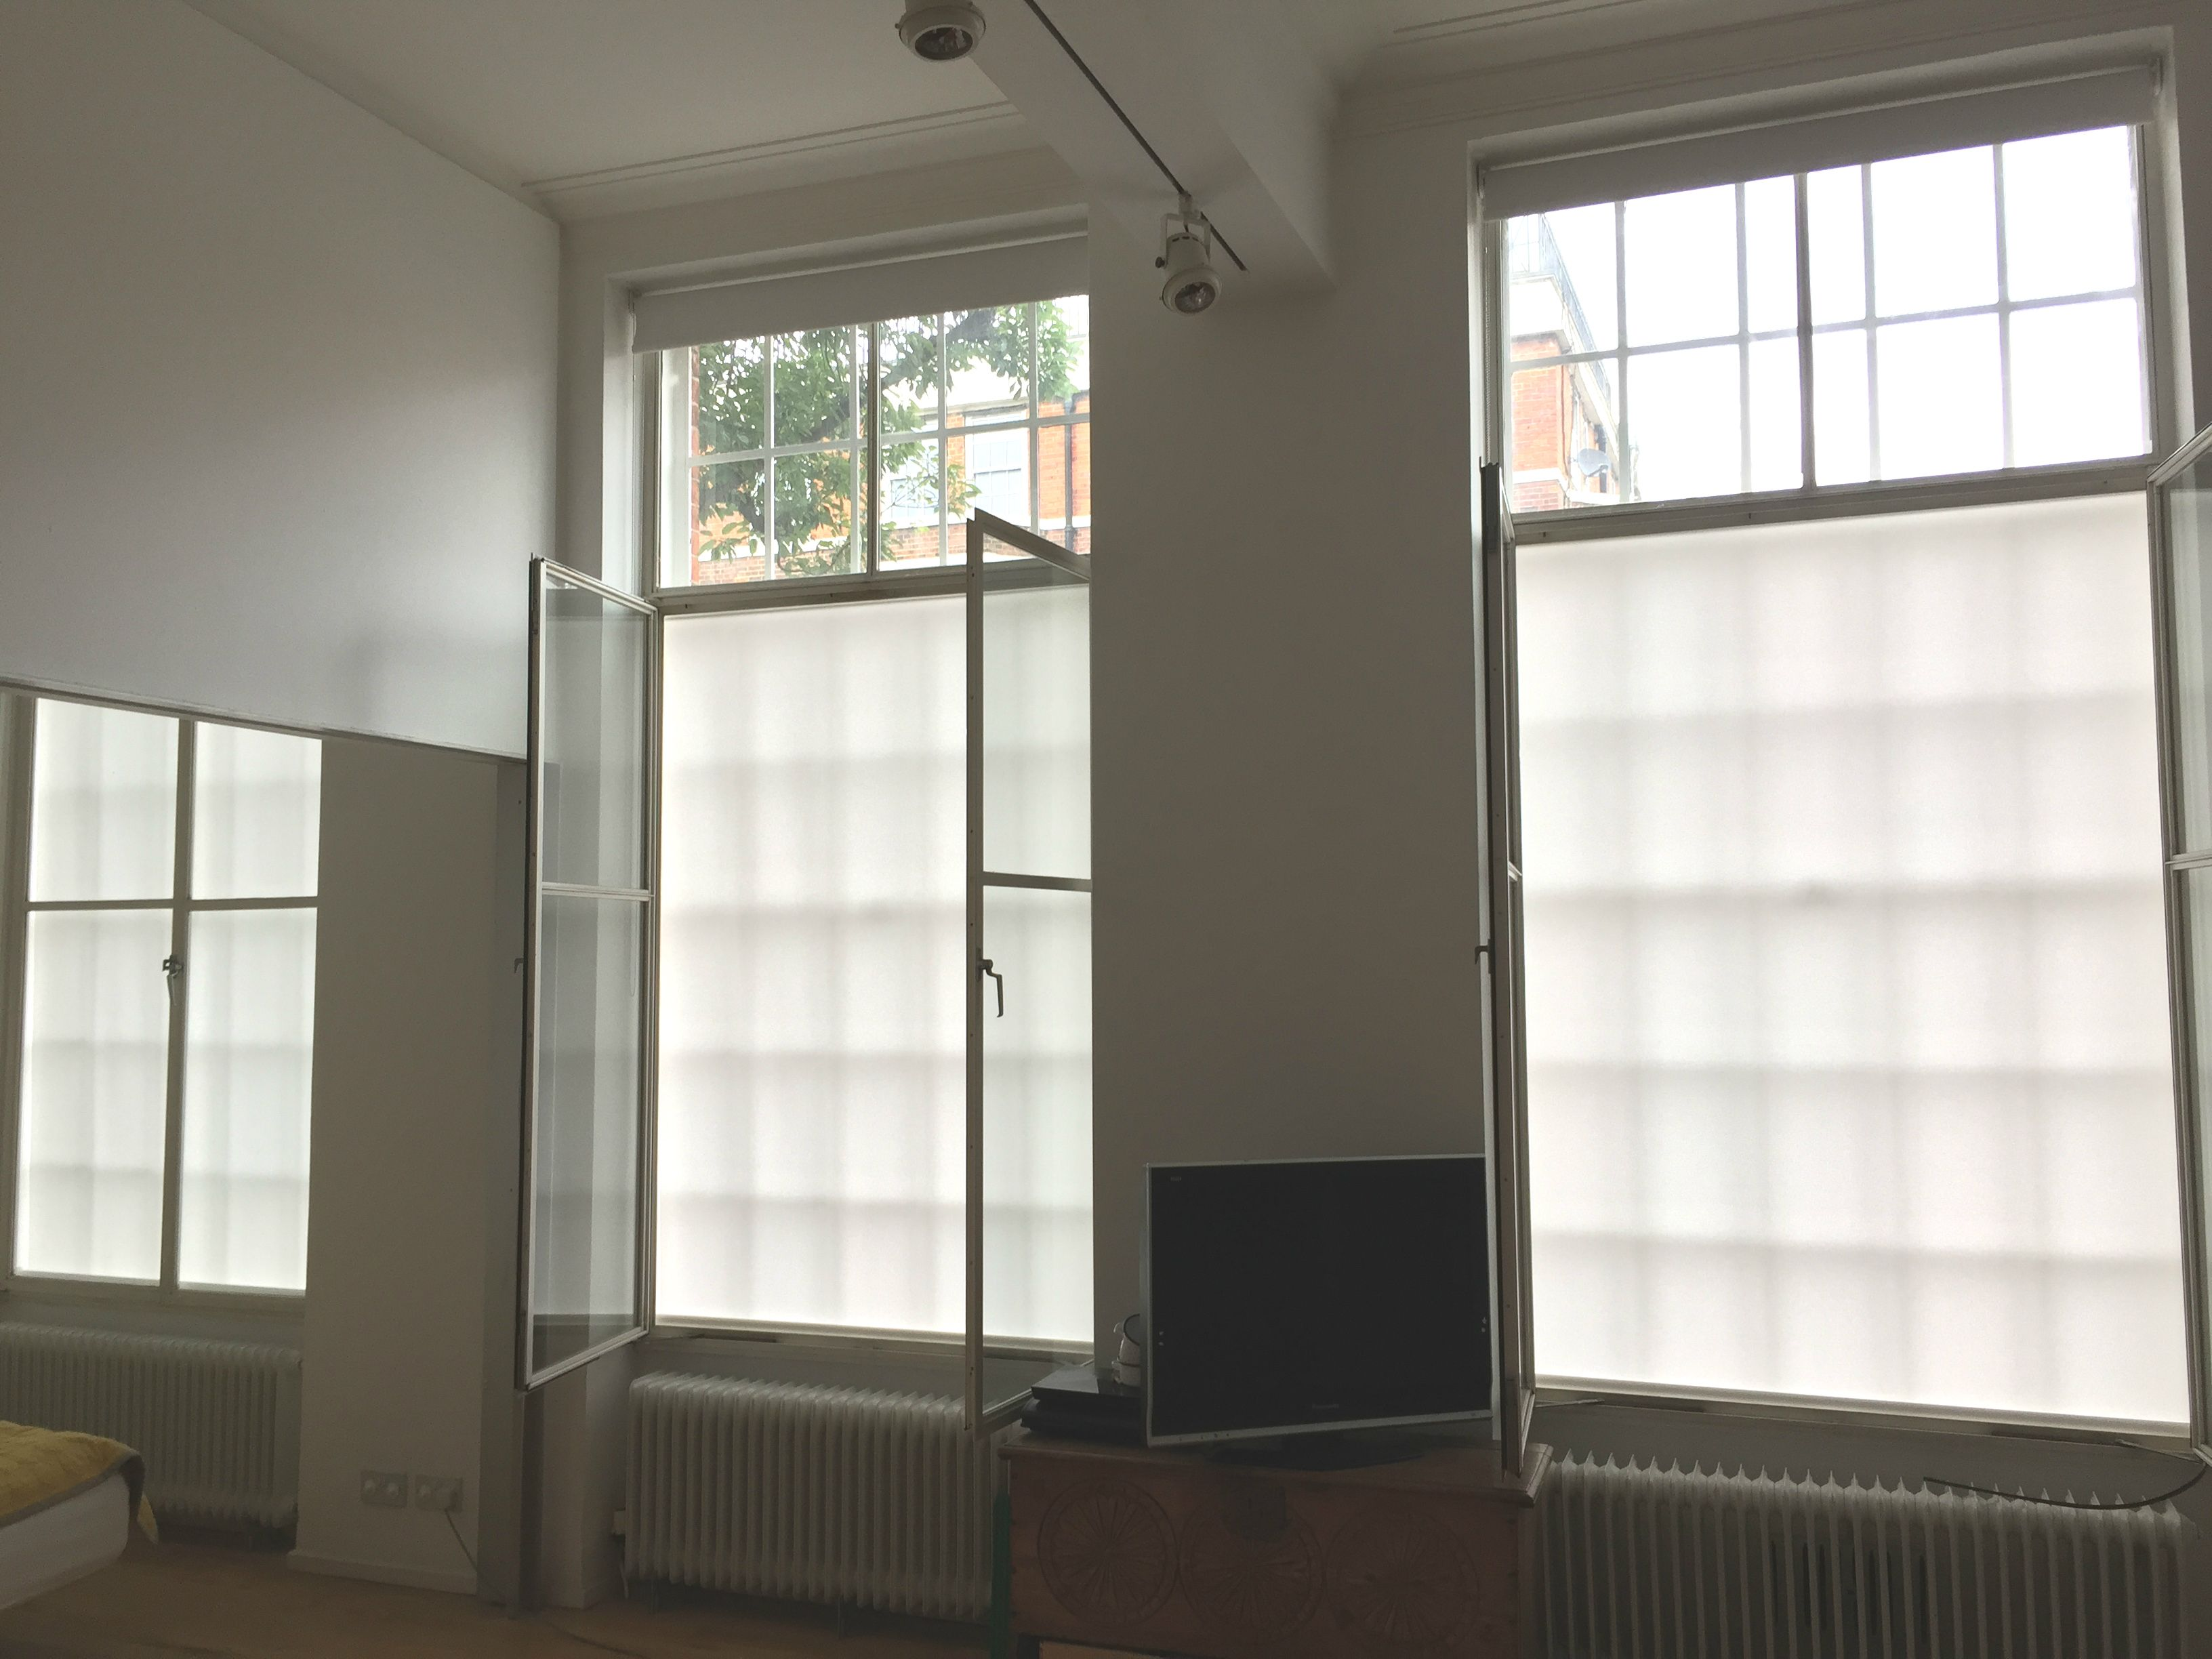 blind roller window cropped interiors bottom blinds image babic up